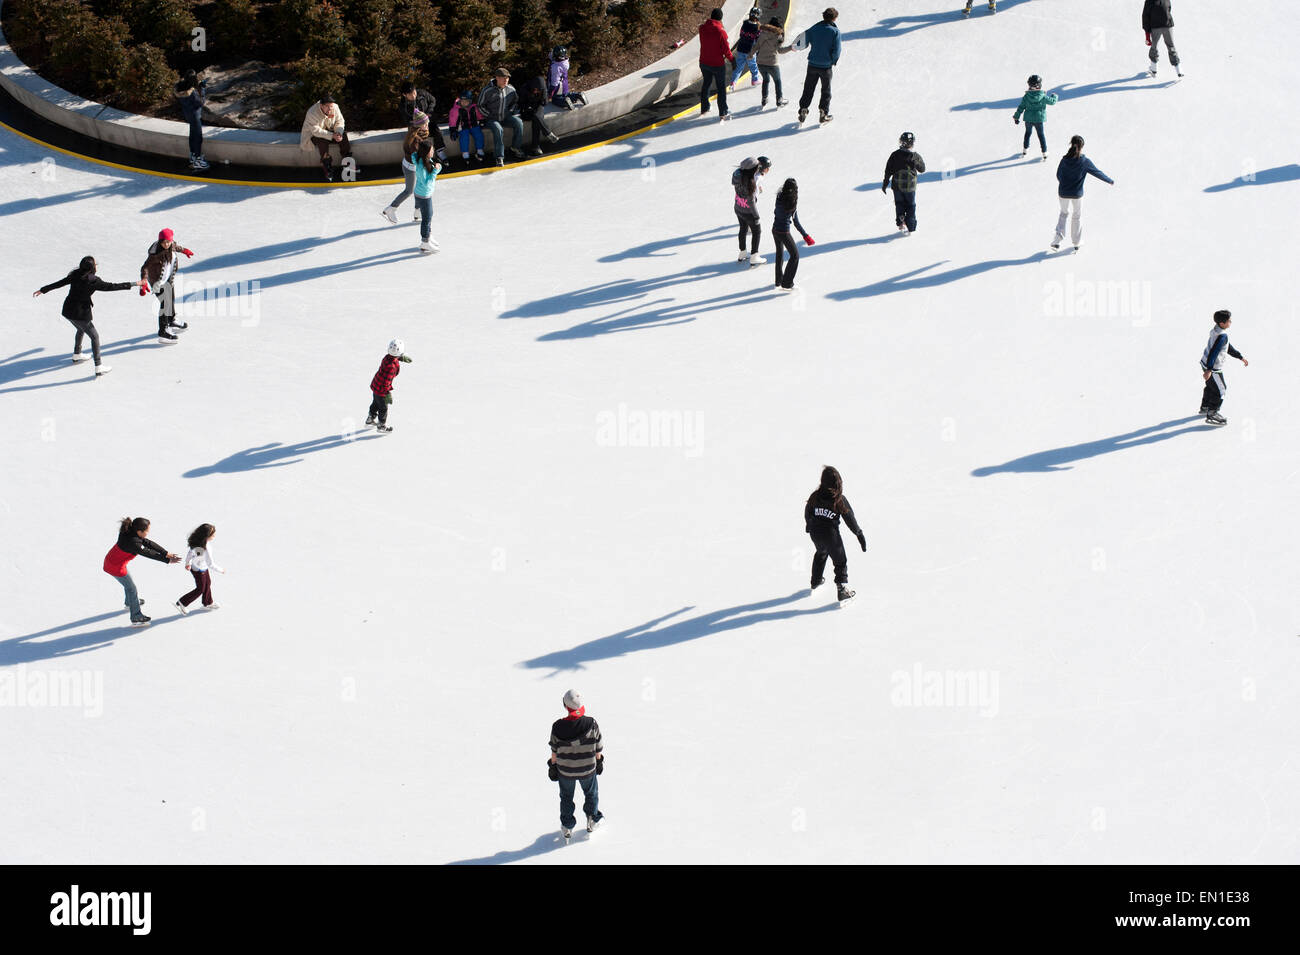 Aerial View Of People Skating In Community Rink During Winter Holiday Season